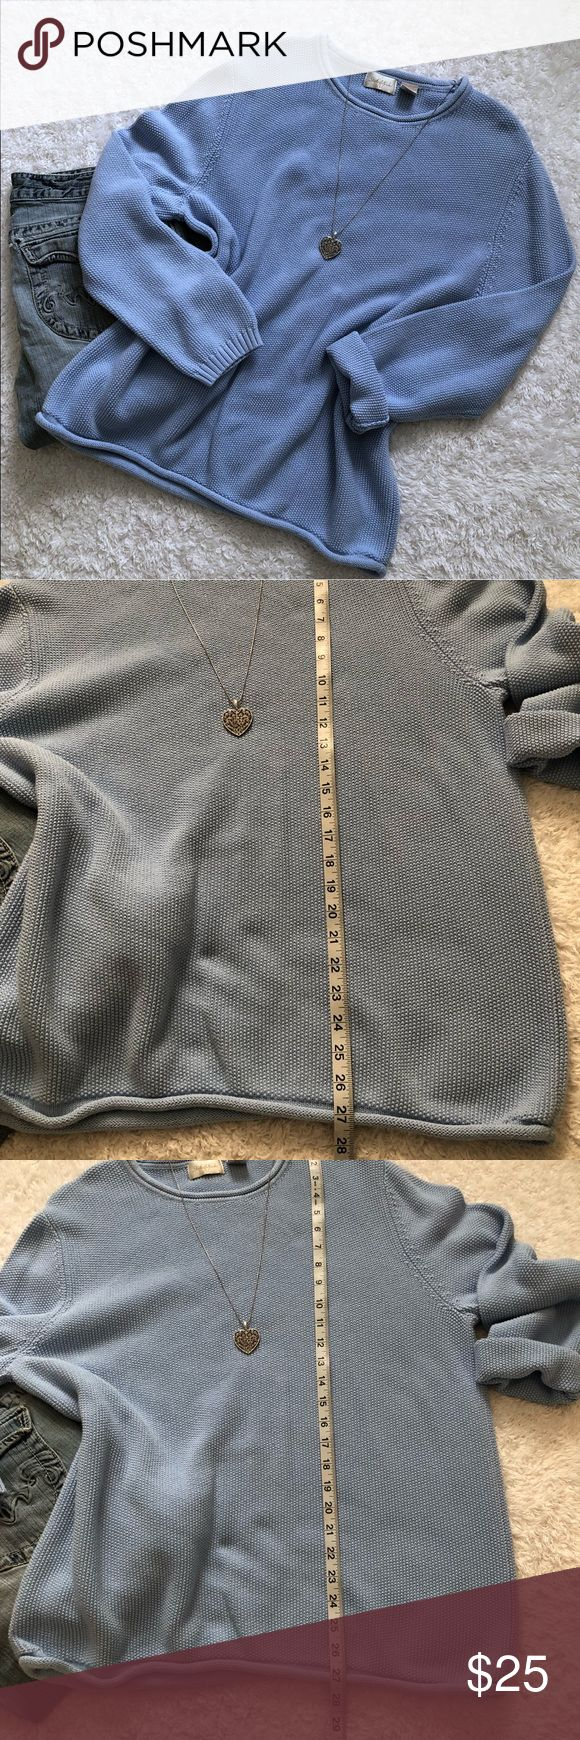 Studio Works Light Blue Sweater In Excellent condition. Would be great for smaller sizes as well if they like loose/oversized fit with jeggins. Measurements are above. Pls let me know if you have any questions. Bundle up to save and Offers are welcome :) Studio Works Sweaters